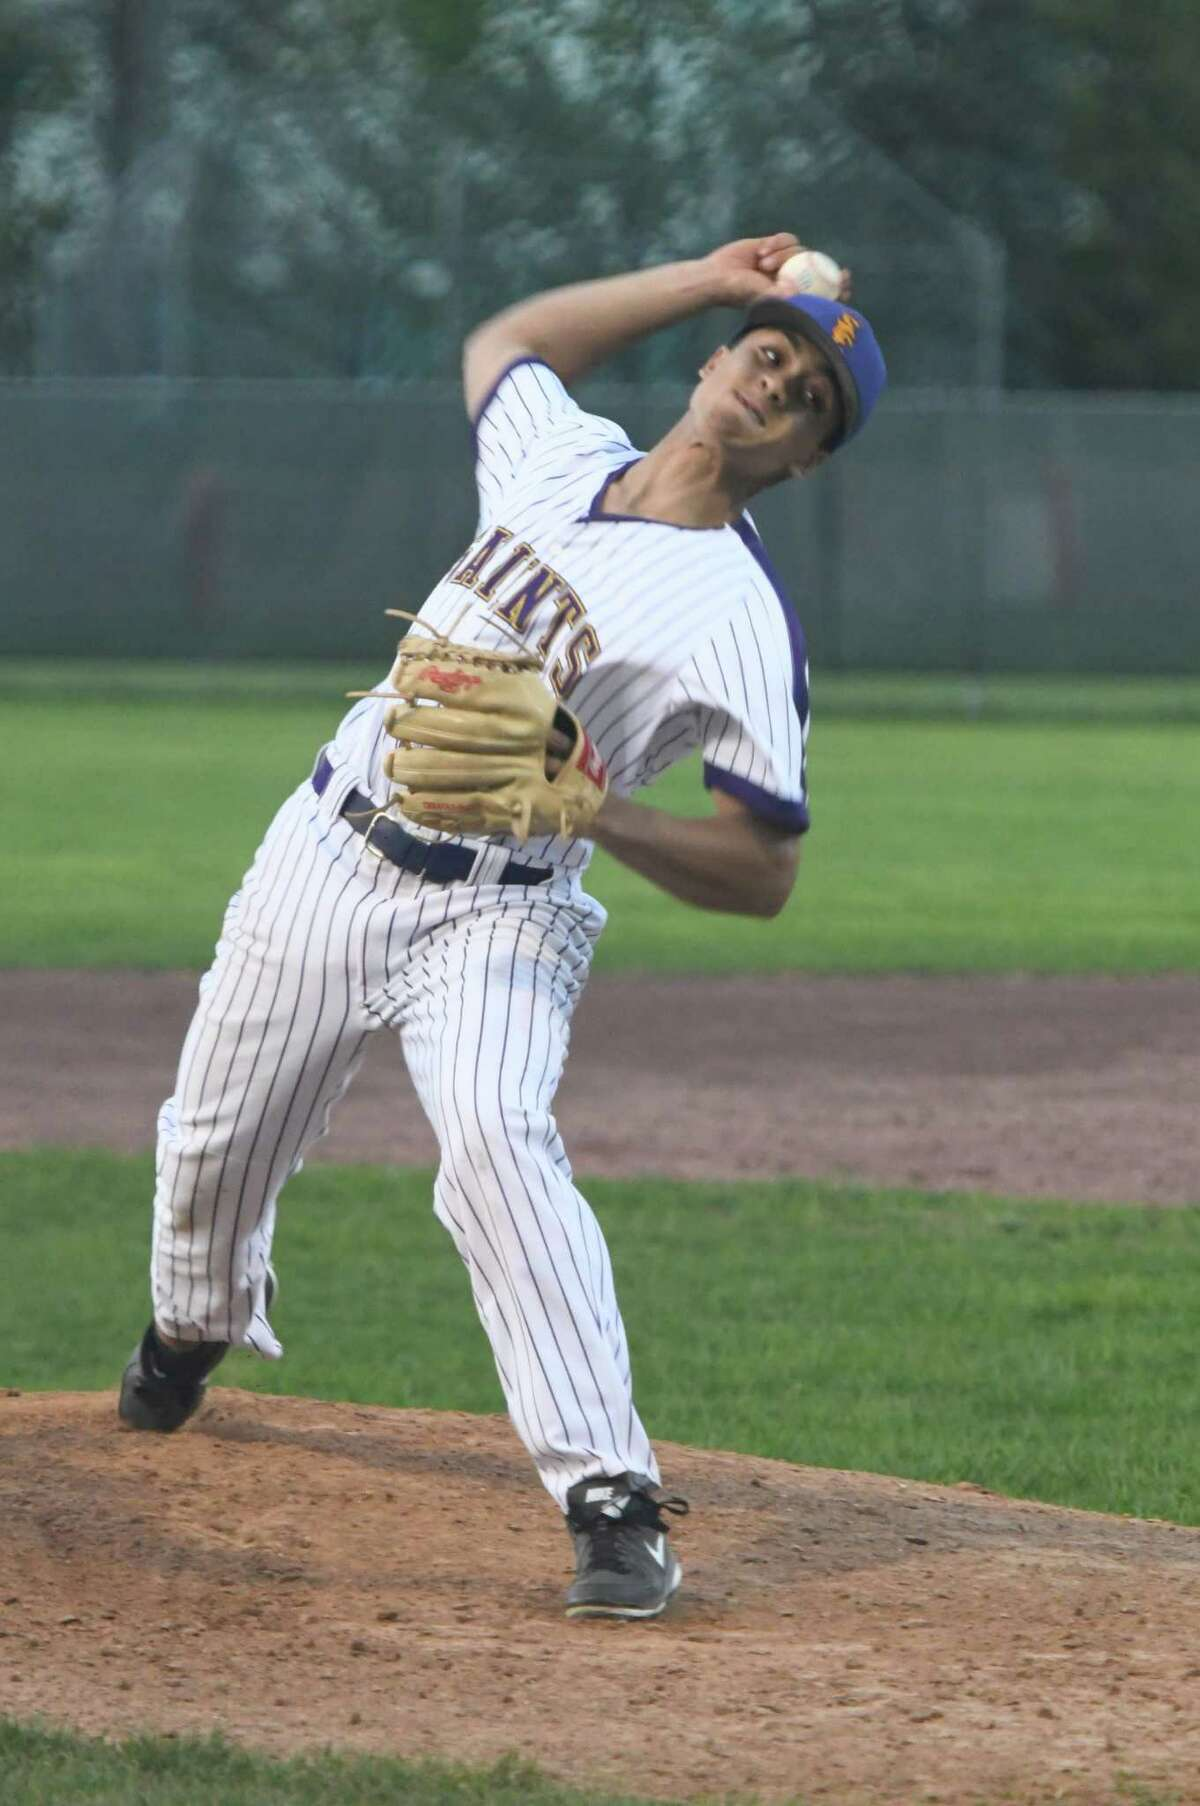 Spa Catholic pitcher Terel Tillman makes a pitch during a game against Mechanicville on Saturday, May 11, 2019, at Veterans Memorial Park in Saratoga Springs, N.Y. (Jenn March, Special to the Times Union )